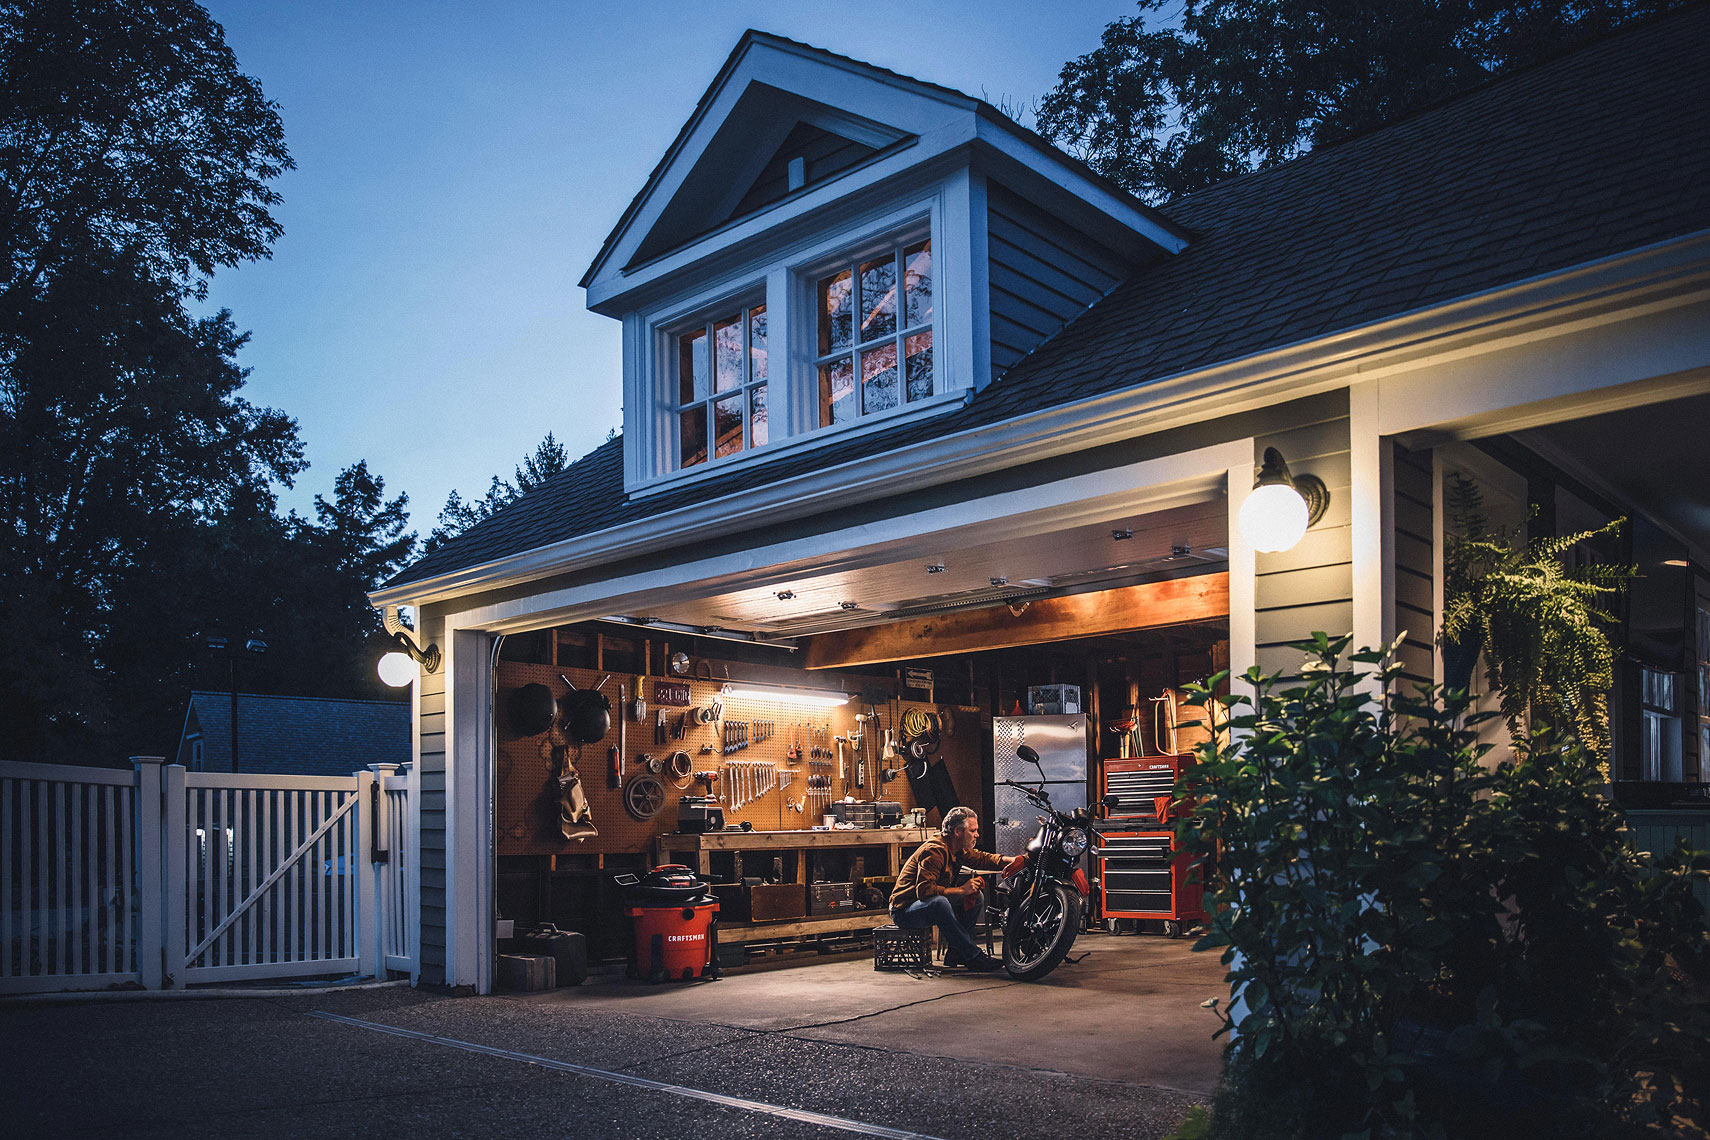 Craftsman Tools 20 Gallon Wet/Dry Vacuum | Man working on his Moto Guzzi motorcycle in his garage with Craftsman vac in the background. | John Fedele Product Photography